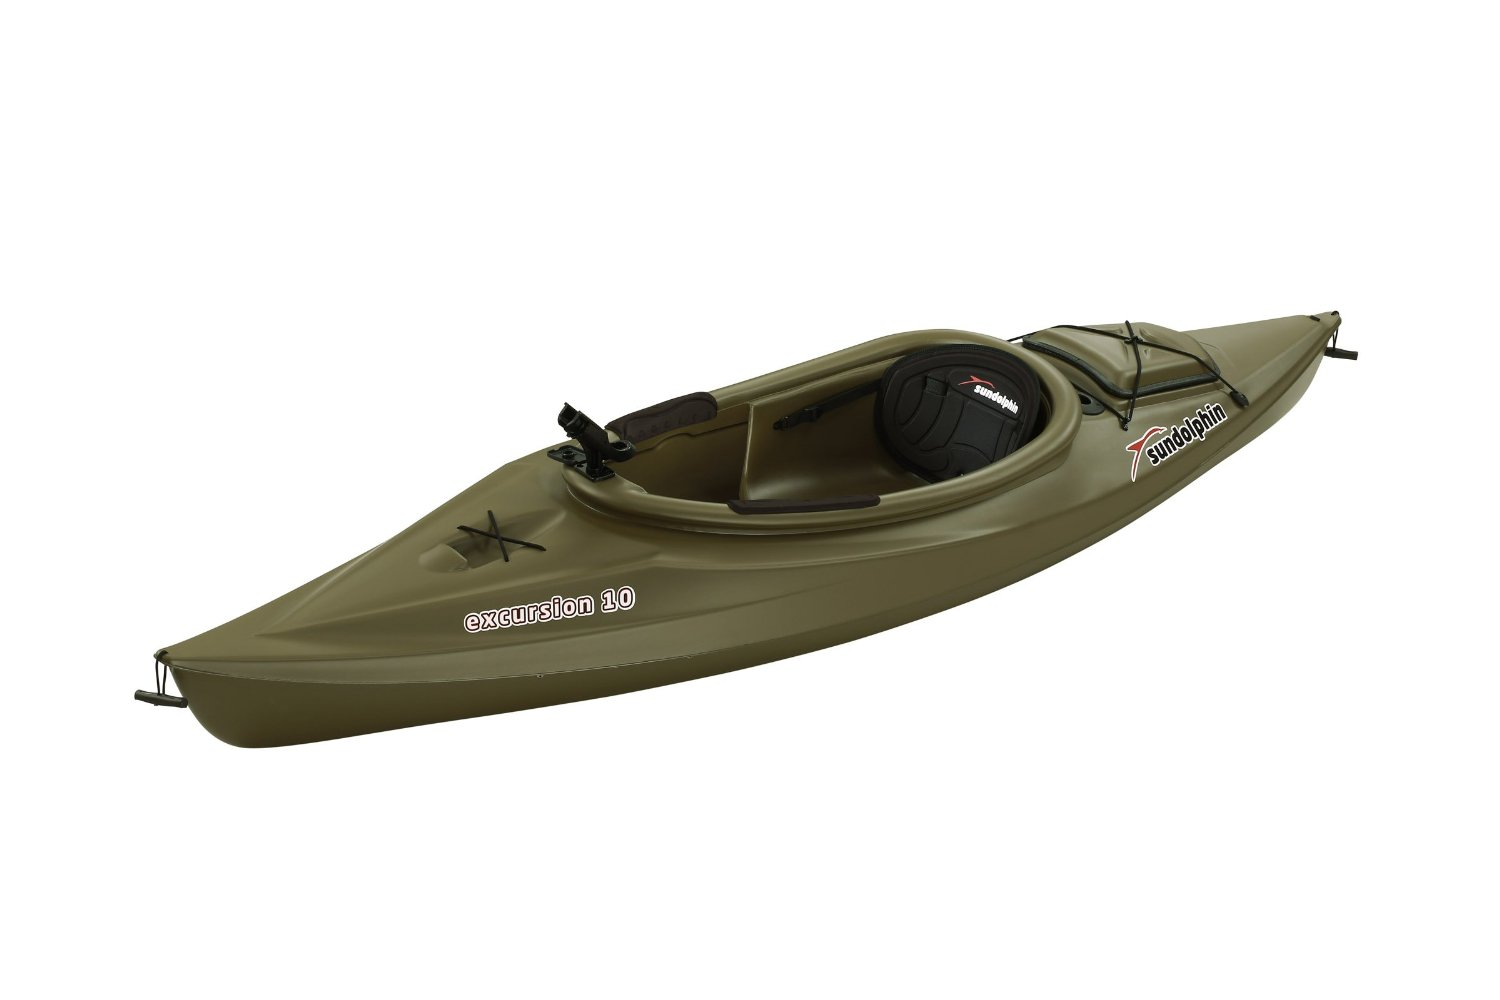 Sun dolphin excursion 10 foot sit in fishing kayak for 10 ft sun dolphin fishing kayak